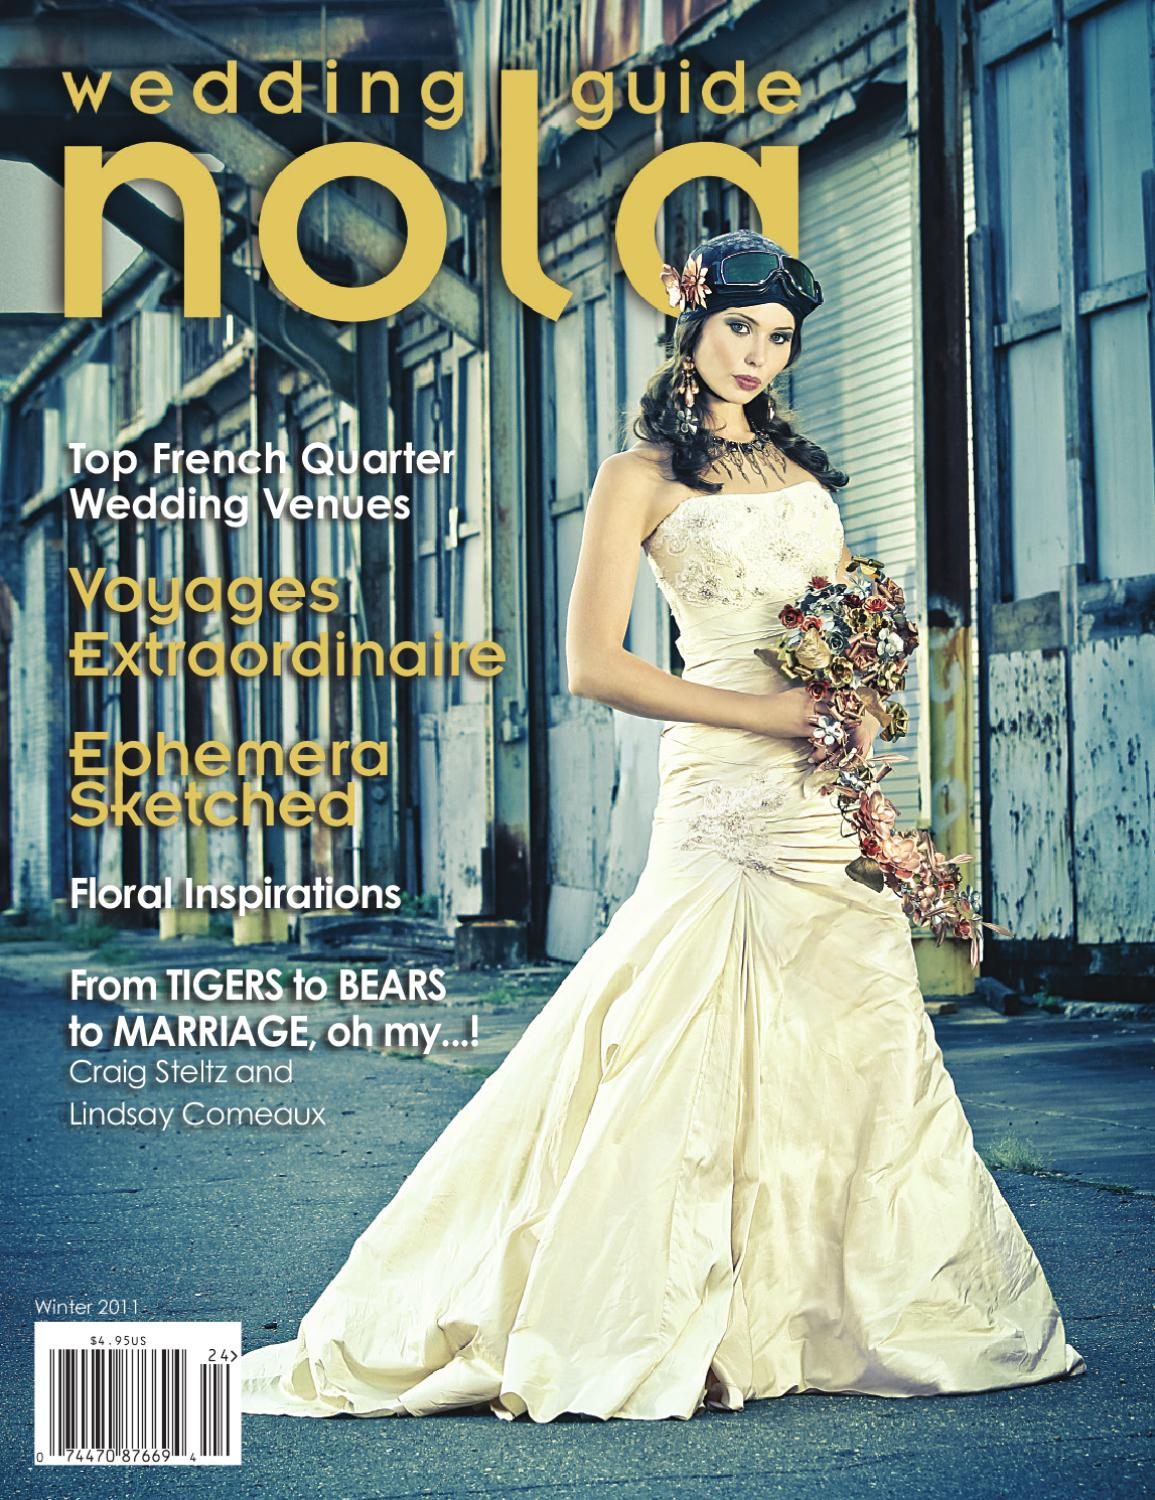 e95fce2ebee NOLA Wedding Guide Fall 2012 by NOLA Wedding Guide - issuu